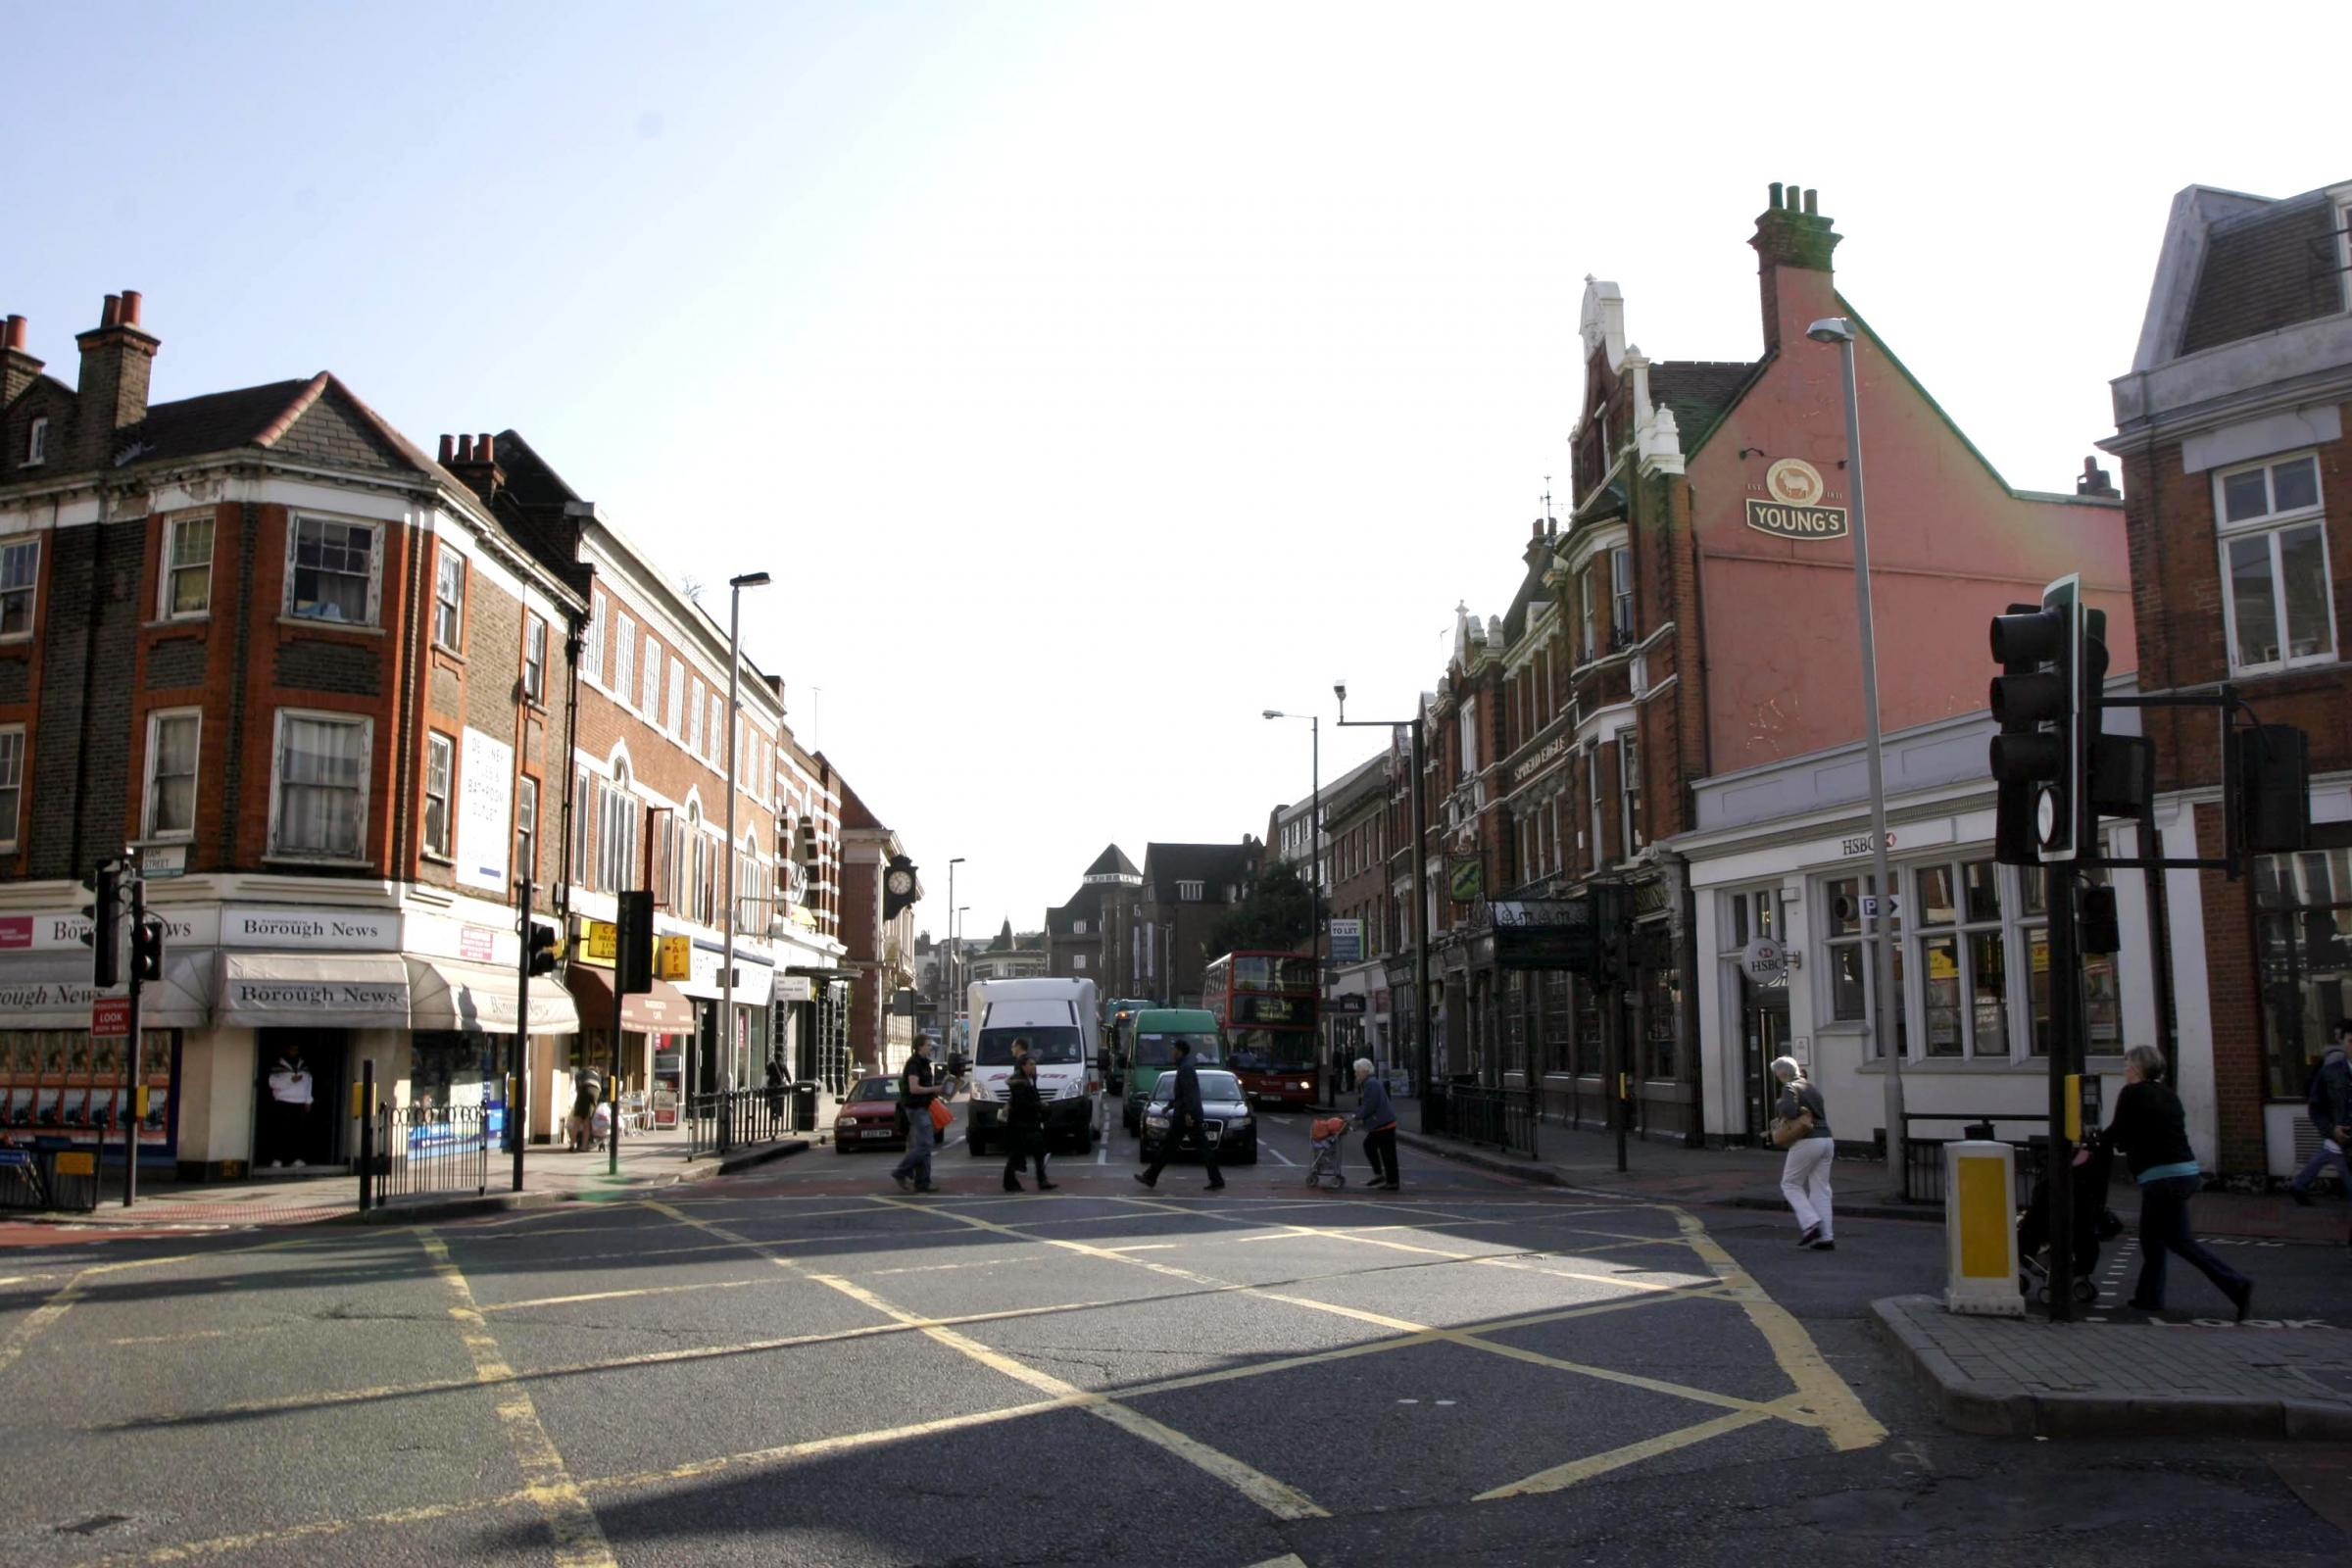 Wandsworth has been named the third most prosperous place in the UK, pictured Wandsworth High Street